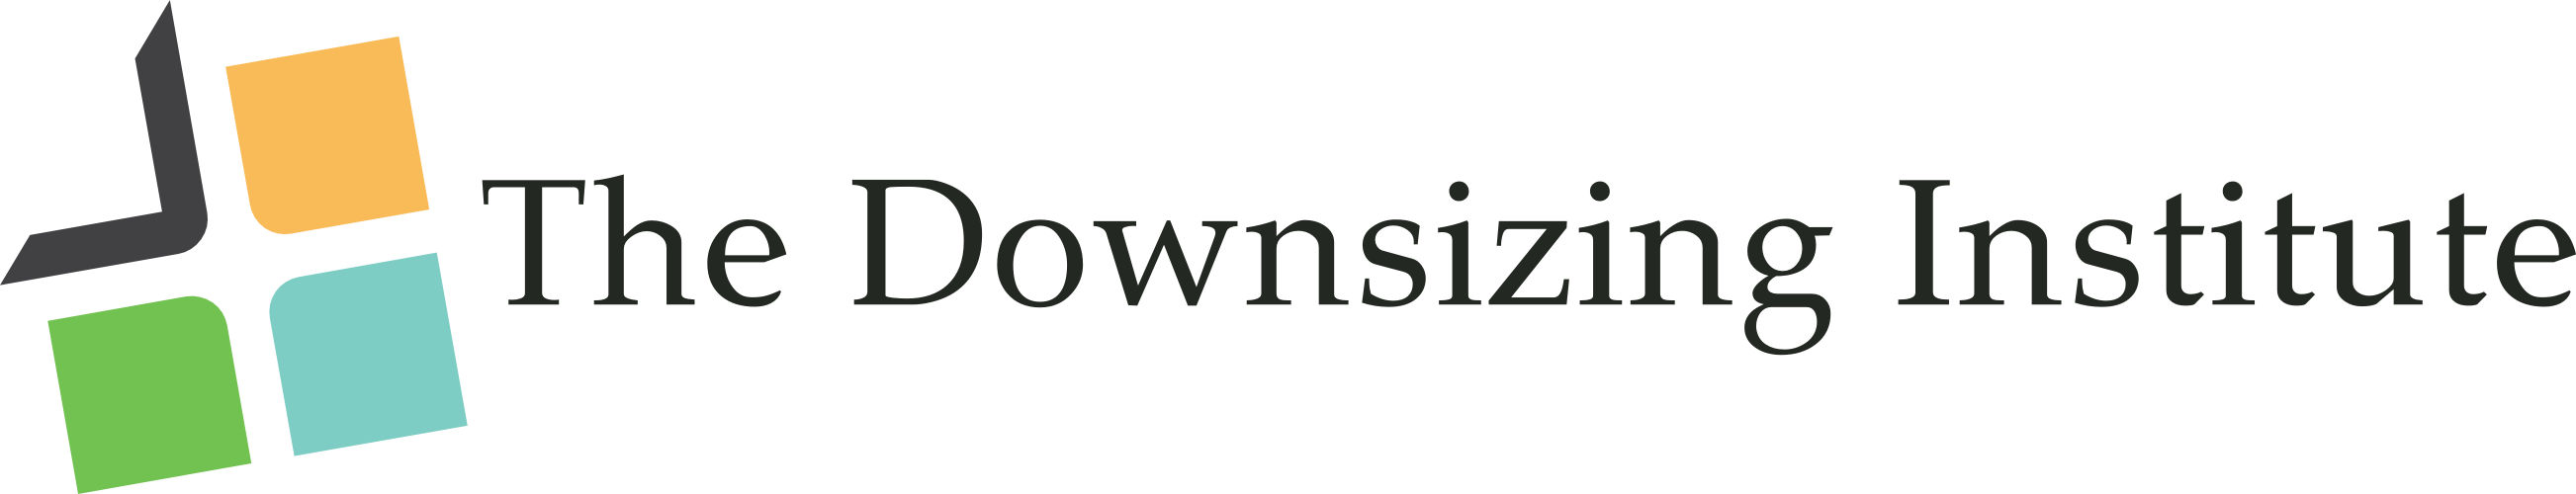 The Downsizing Institute Home Page